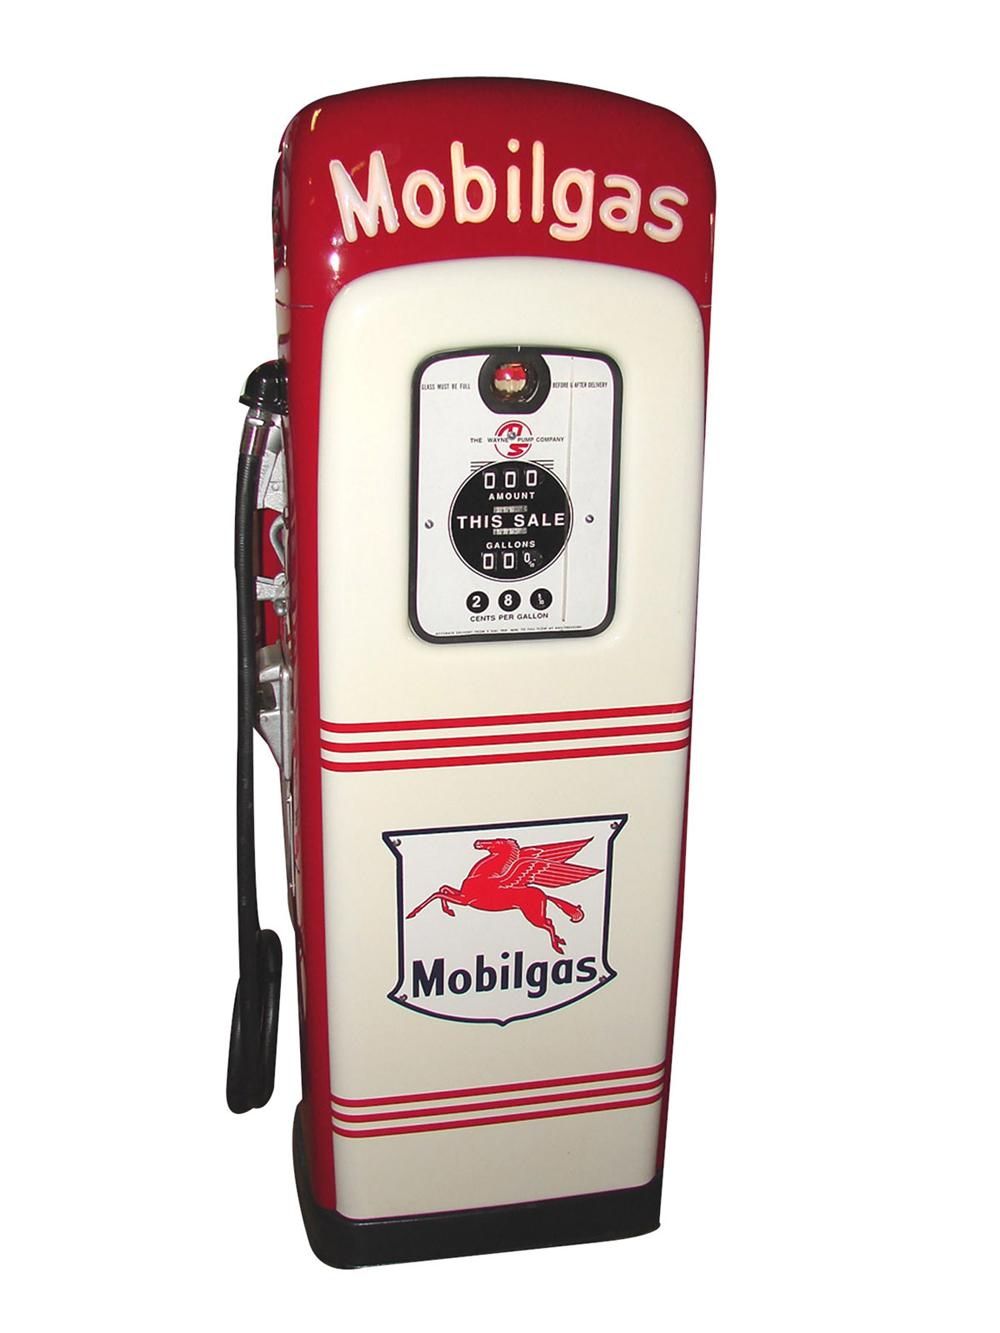 Wonderful 1940s Mobilgas light-up script top M&S model #80 gas pump.  Brilliantly restored. - Front 3/4 - 82536